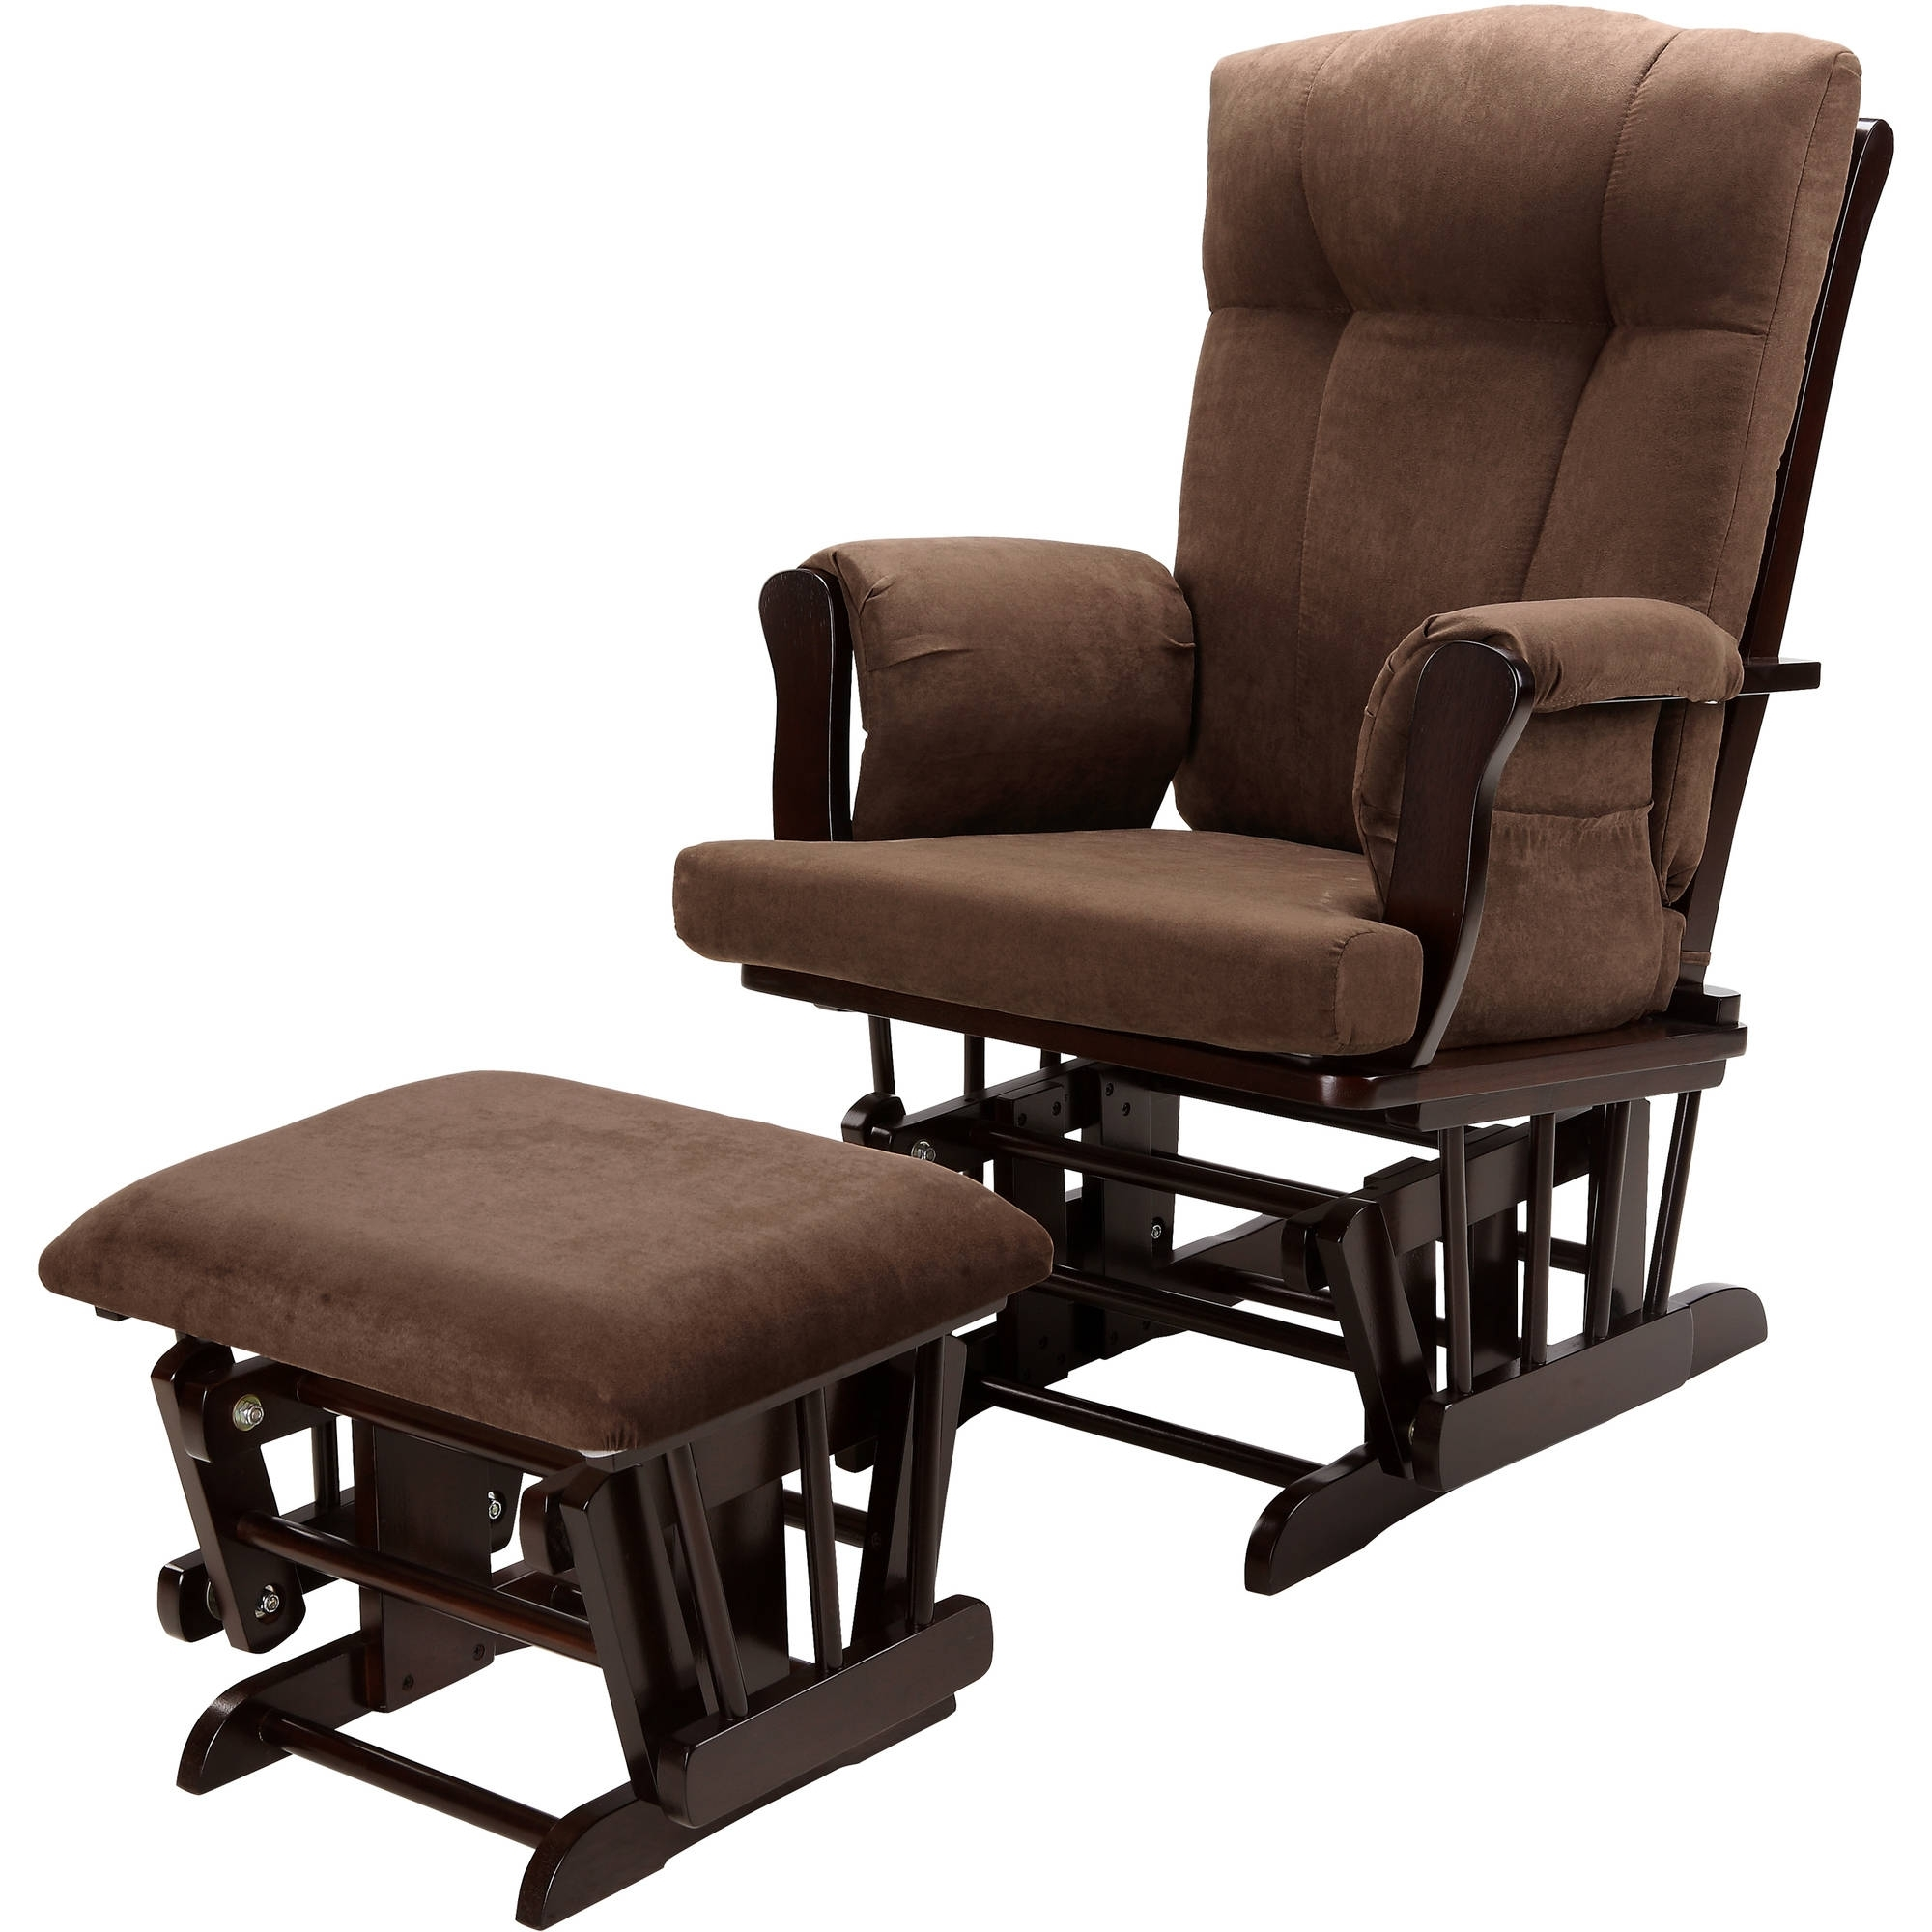 Rocking Chairs With Ottoman In Widely Used Baby Relax Glider Rocker And Ottoman Espresso With Chocolate (View 14 of 20)